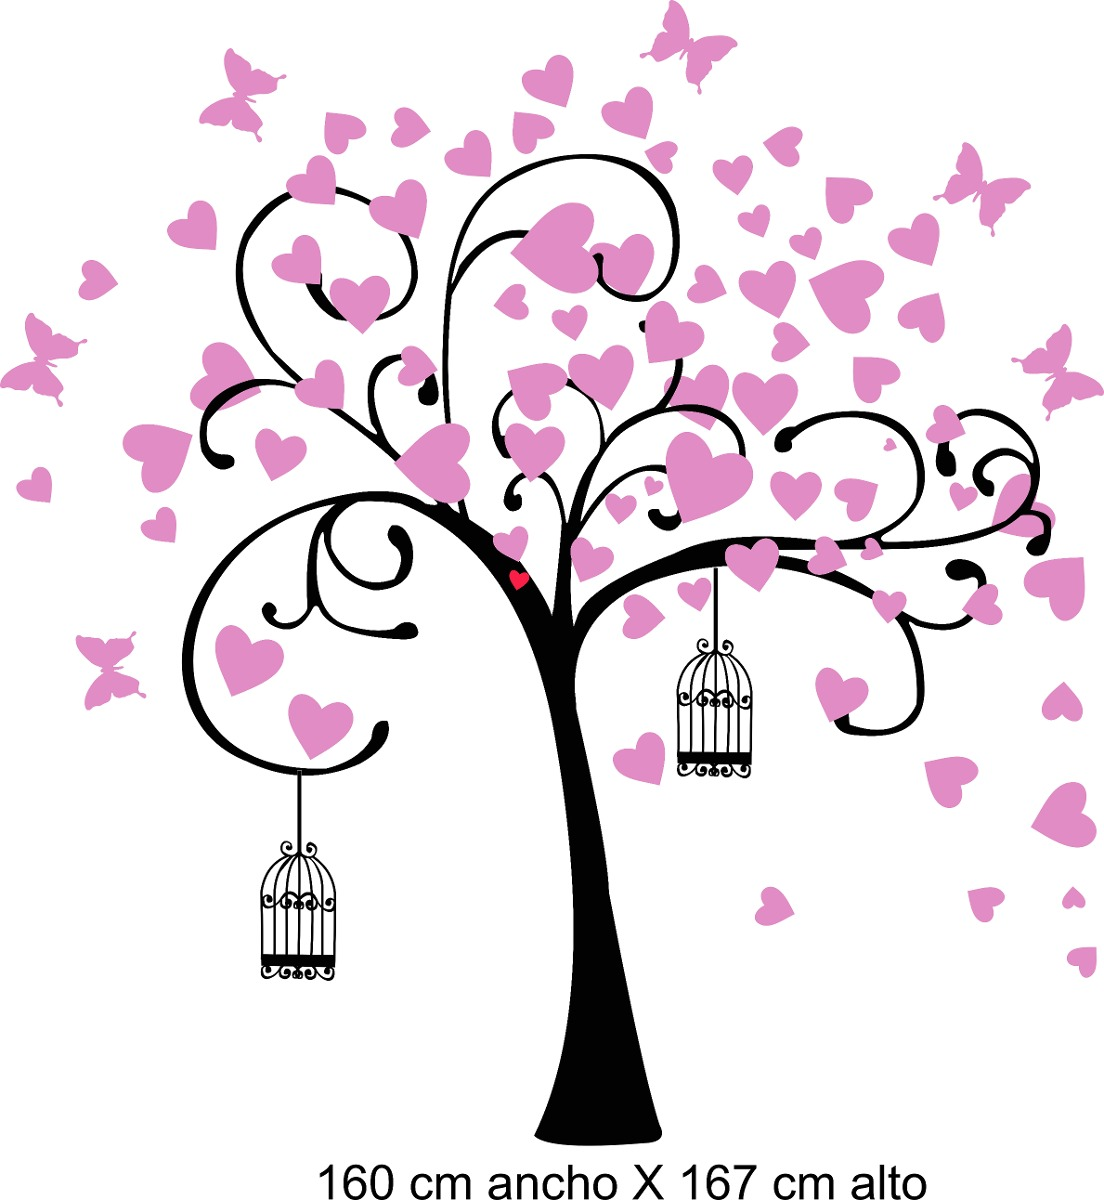 Vinilo Pared Arbol De Corazones Decoracion Wall Stickers 1056 - Corazones-de-decoracion